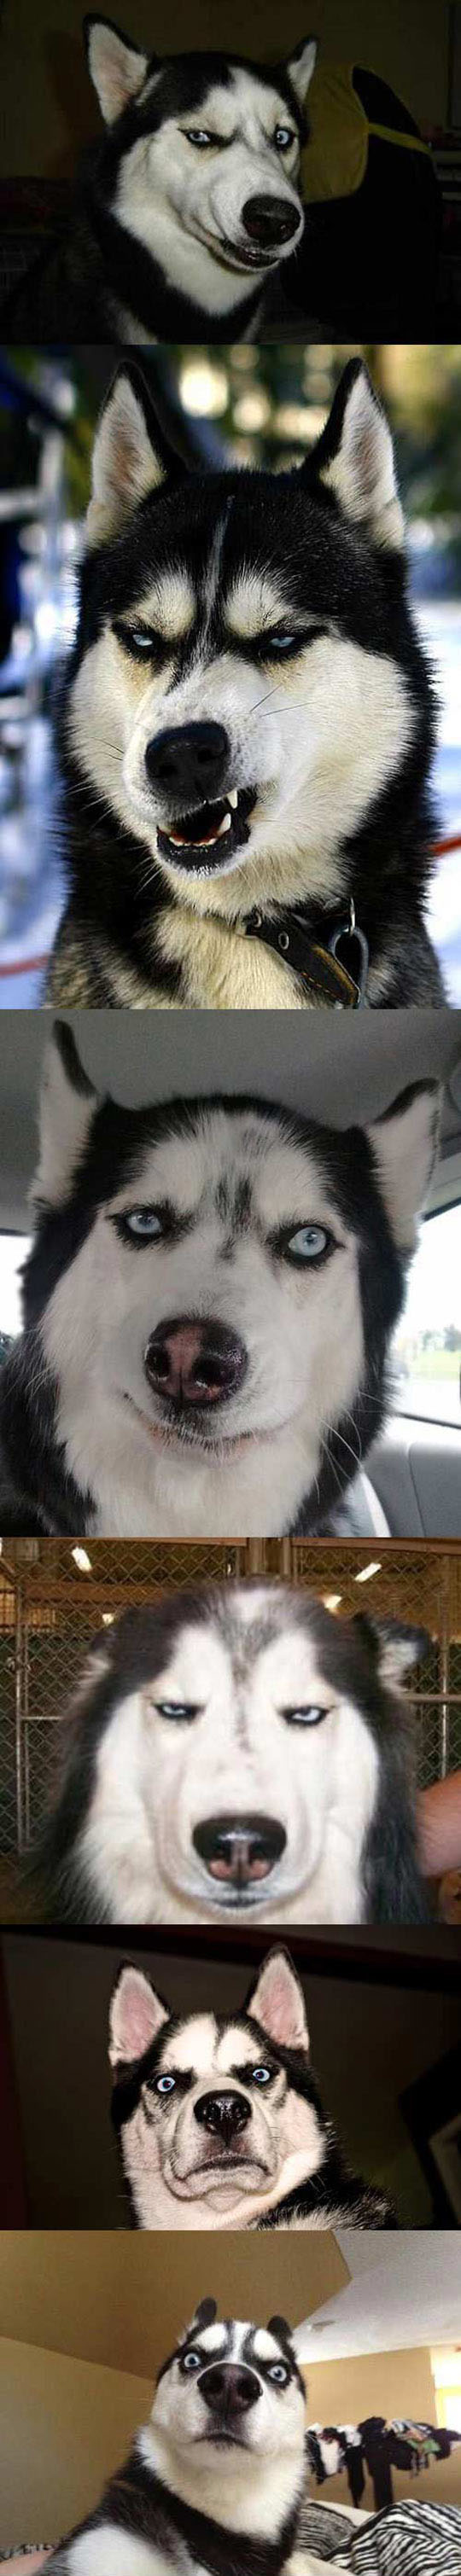 Huskies Usually Make The Best Faces